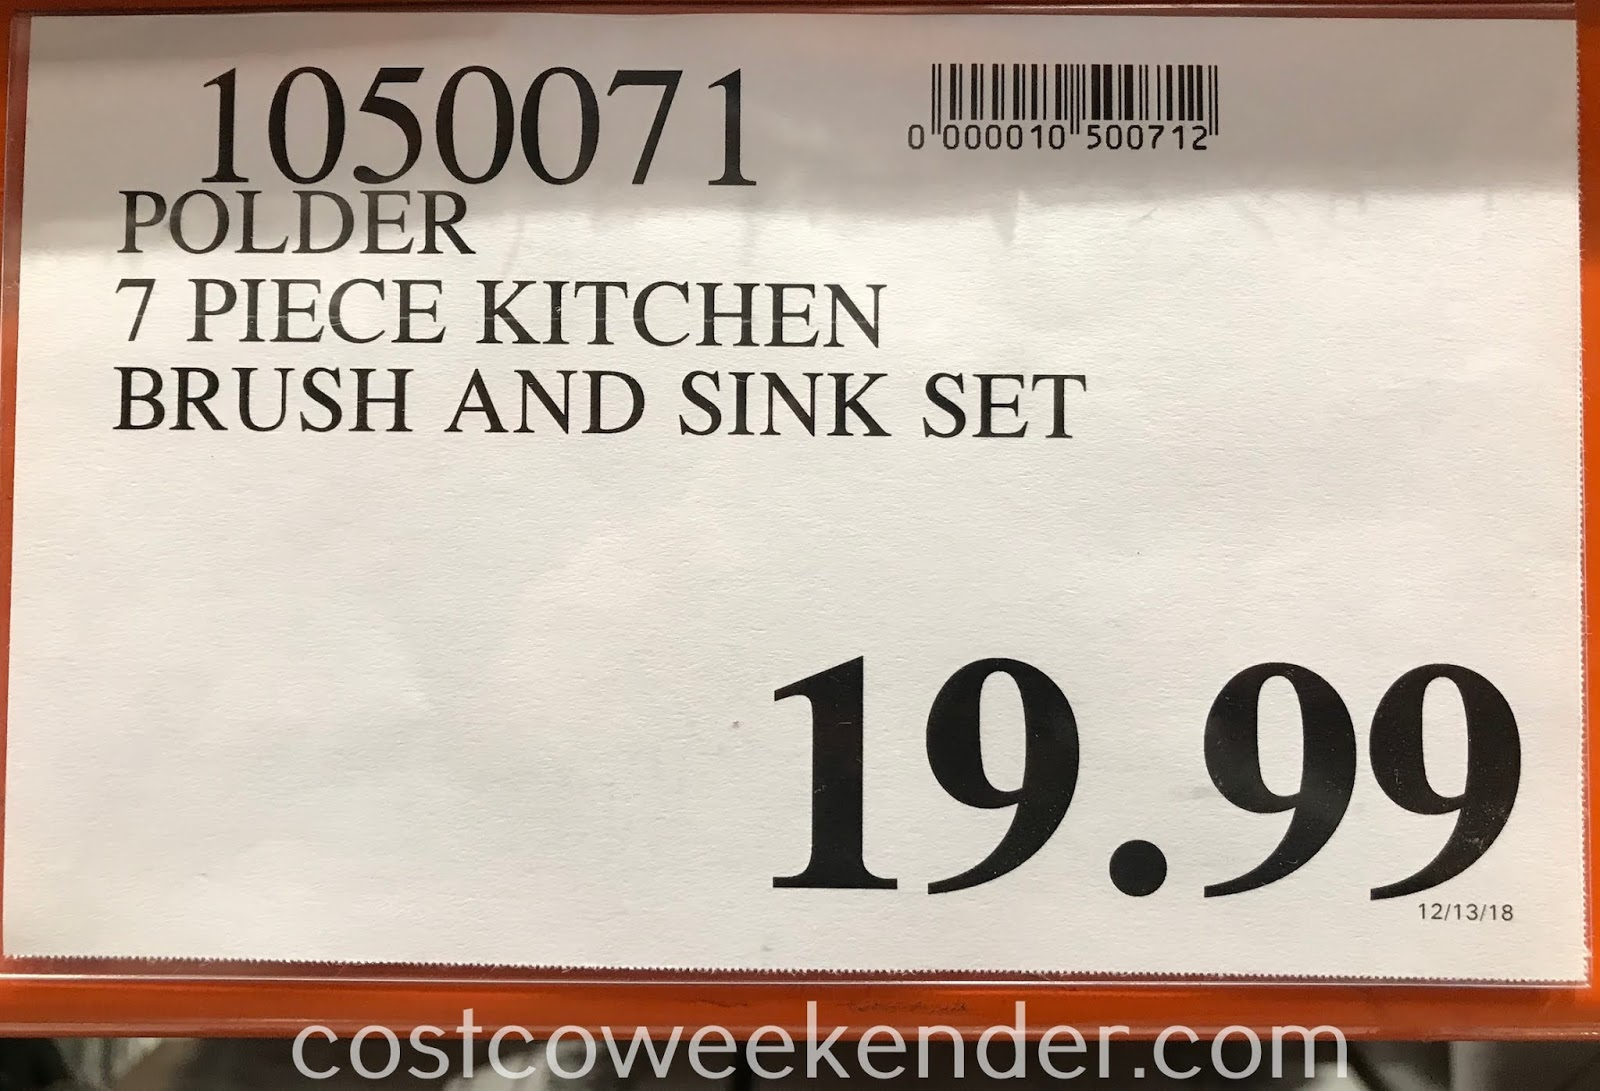 Deal for the 7-piece Polder Kitchen Brush and Sink Set at Costco